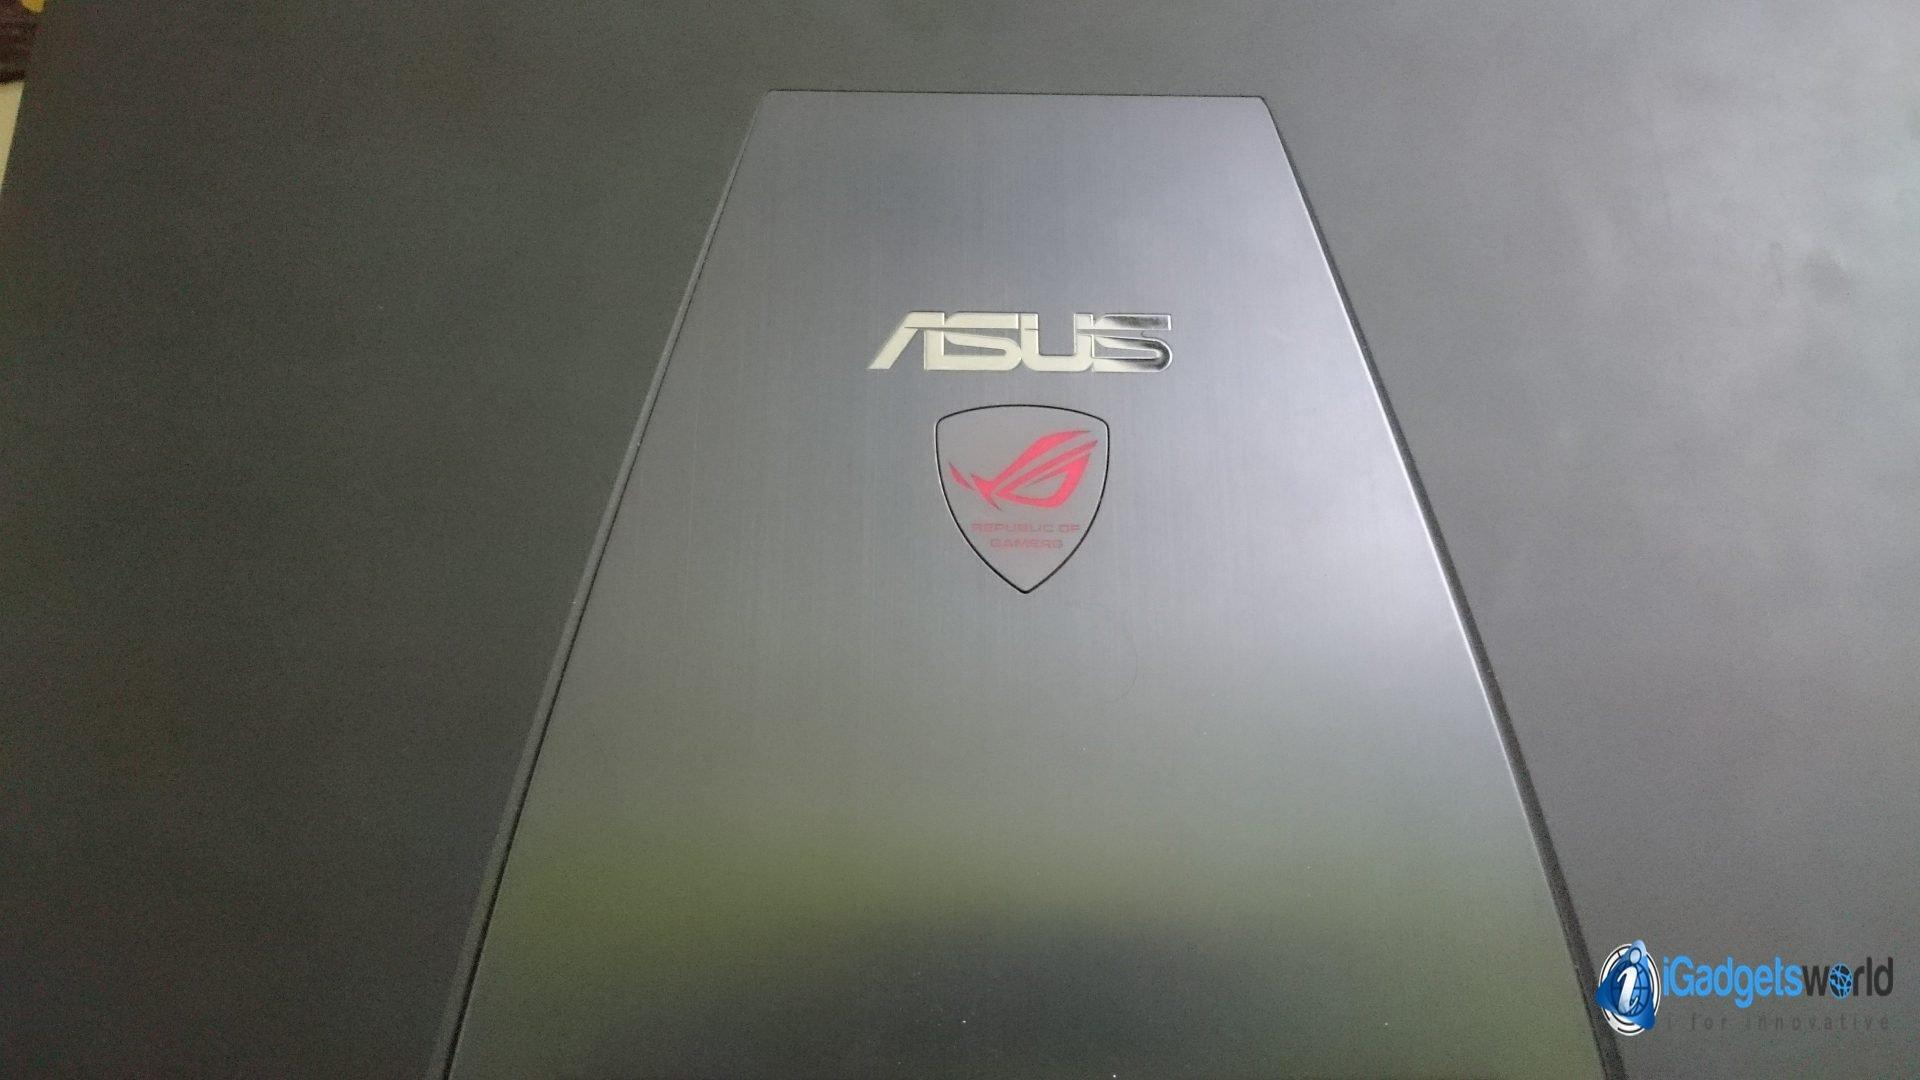 Asus ROG G751J Review: A Slightly Overpriced Ultra High-End Gaming Laptop - 9